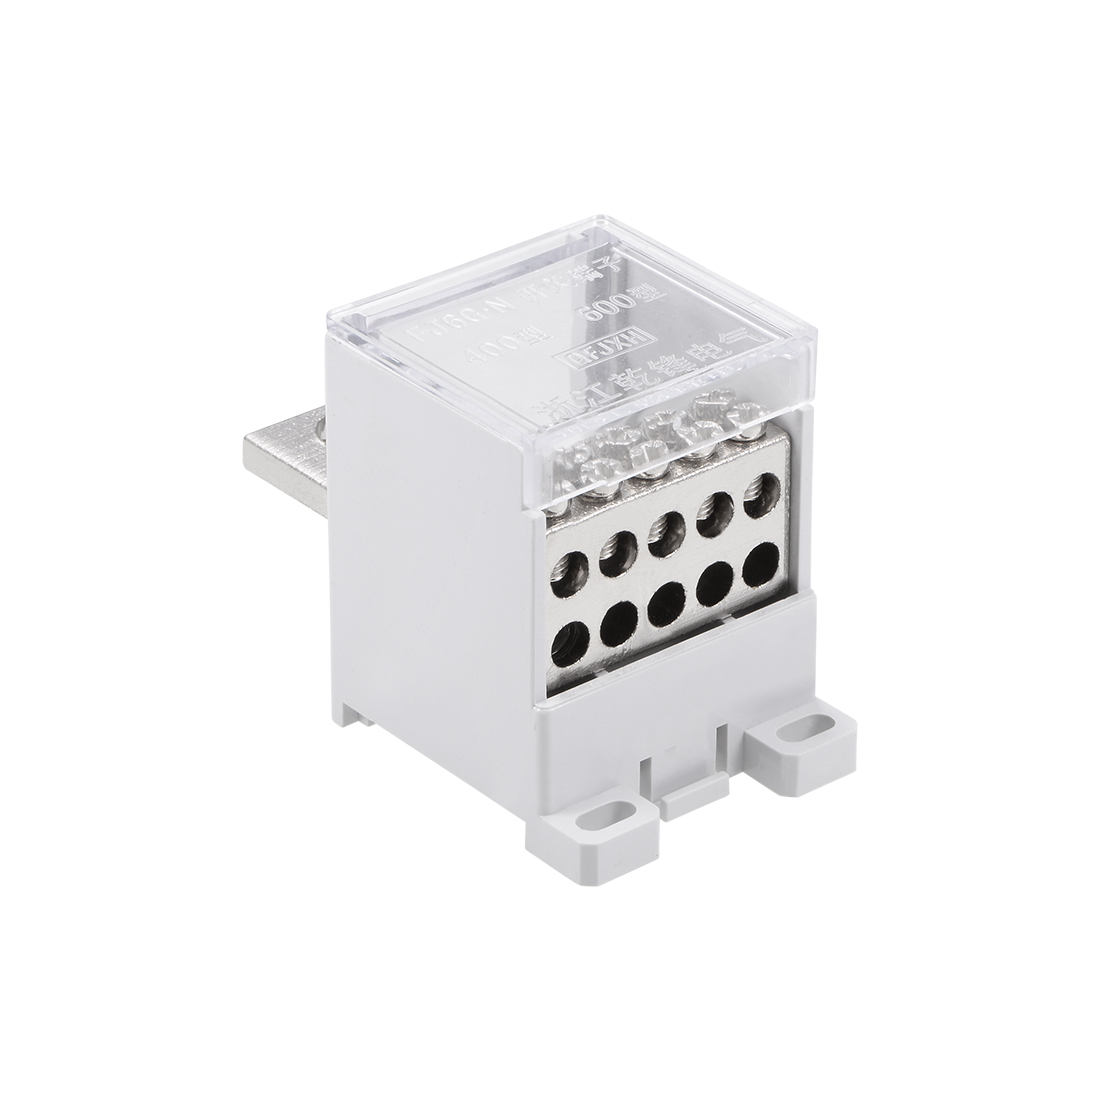 1 In 10 Out DIN Rail Terminal Blocks 400A Distribution Block for Circuit Breaker